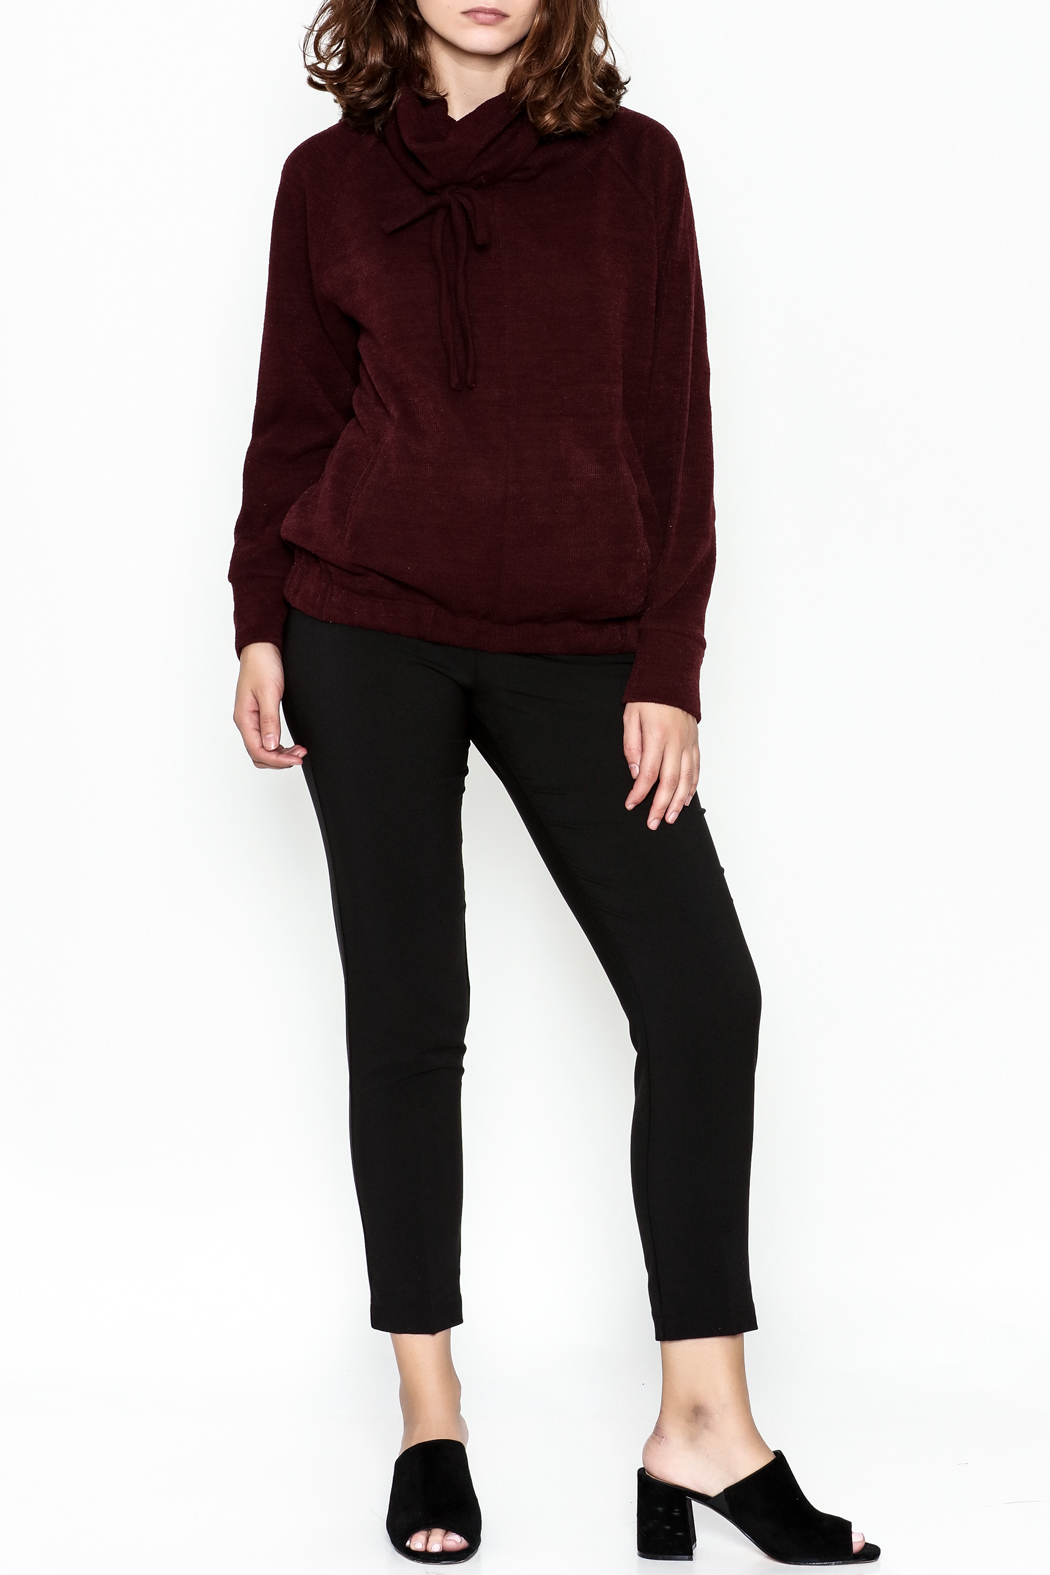 Lumiere Tie Turtleneck Sweater - Side Cropped Image